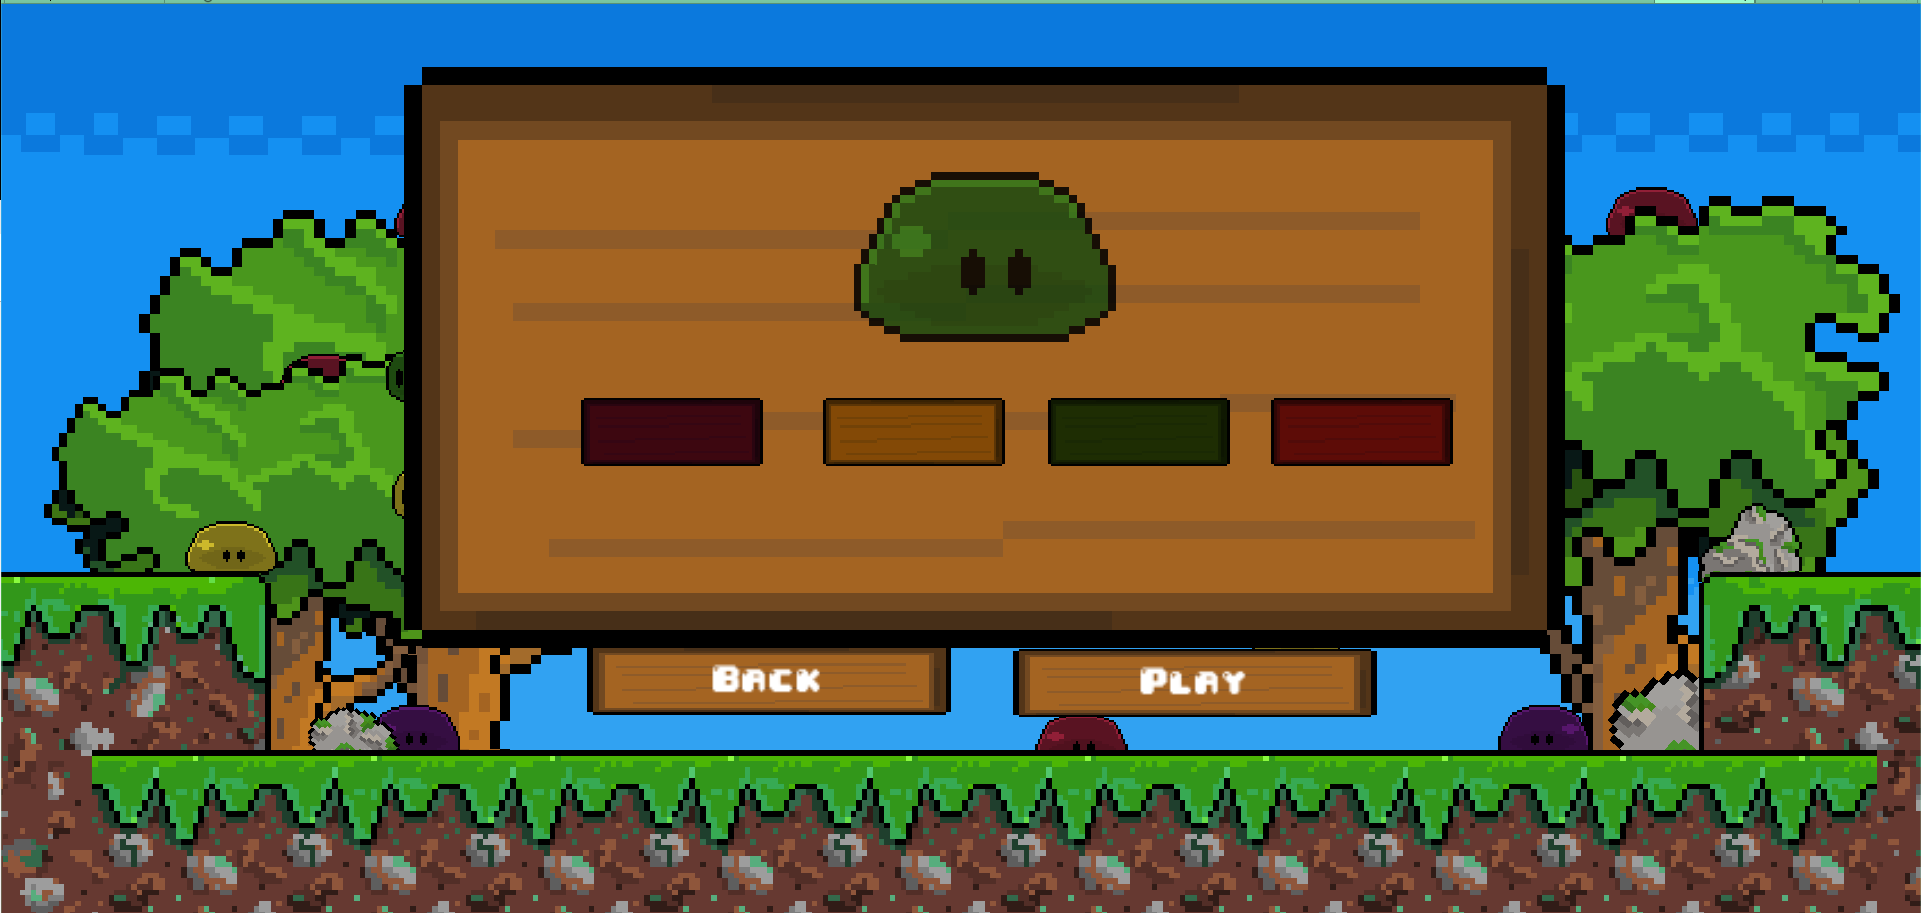 Slime Forest by palicron for Homa Games Monthly Game Jam - itch io